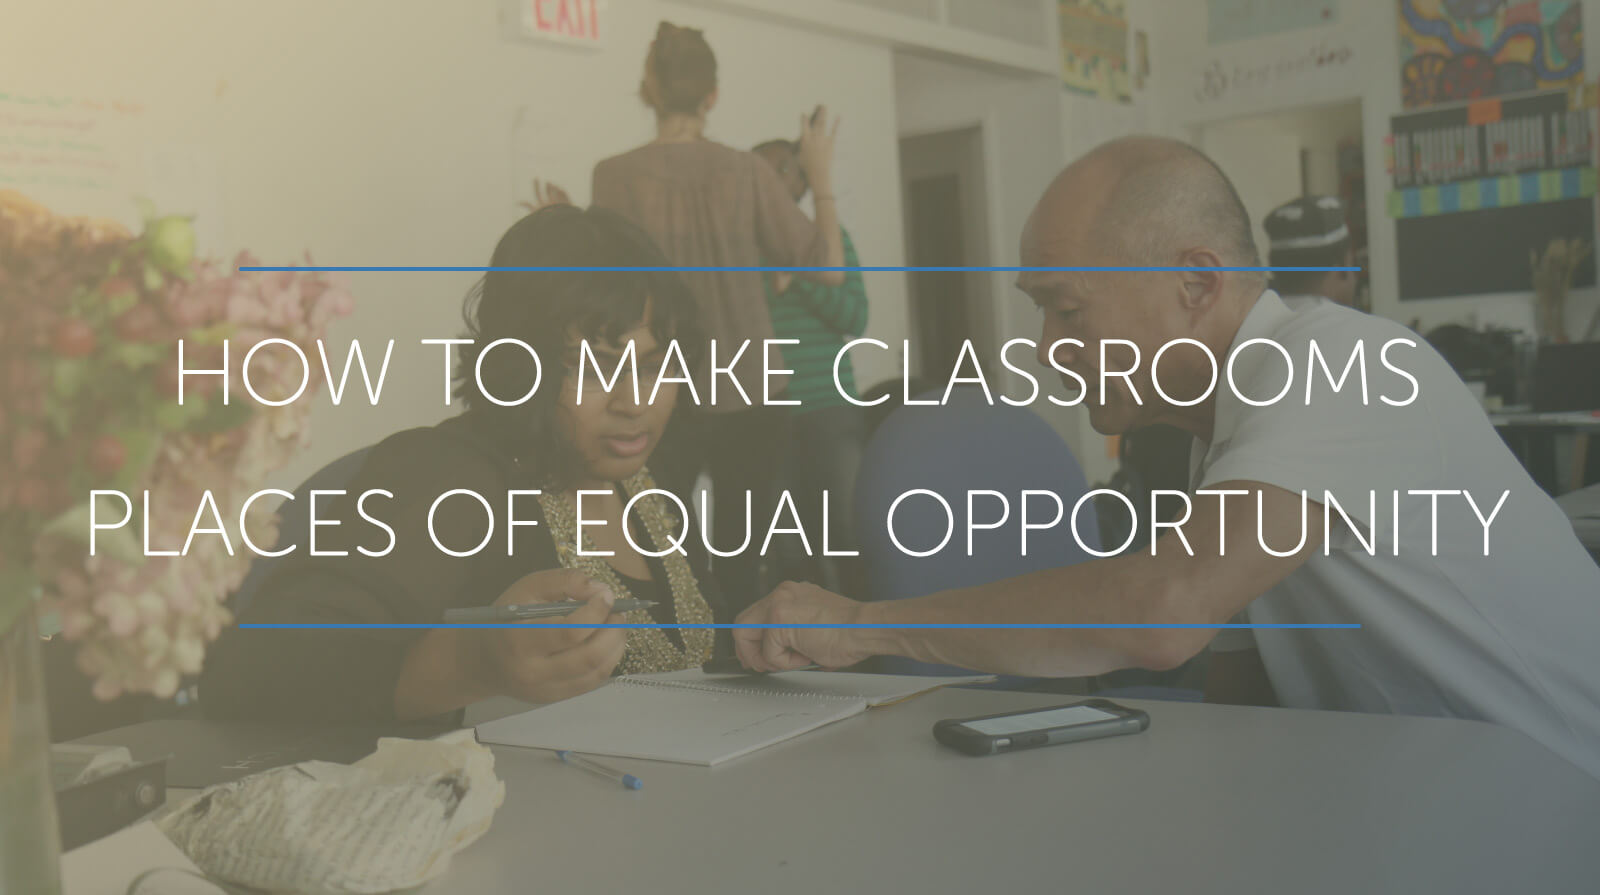 How to Make Classrooms Places of Equal Opportunity